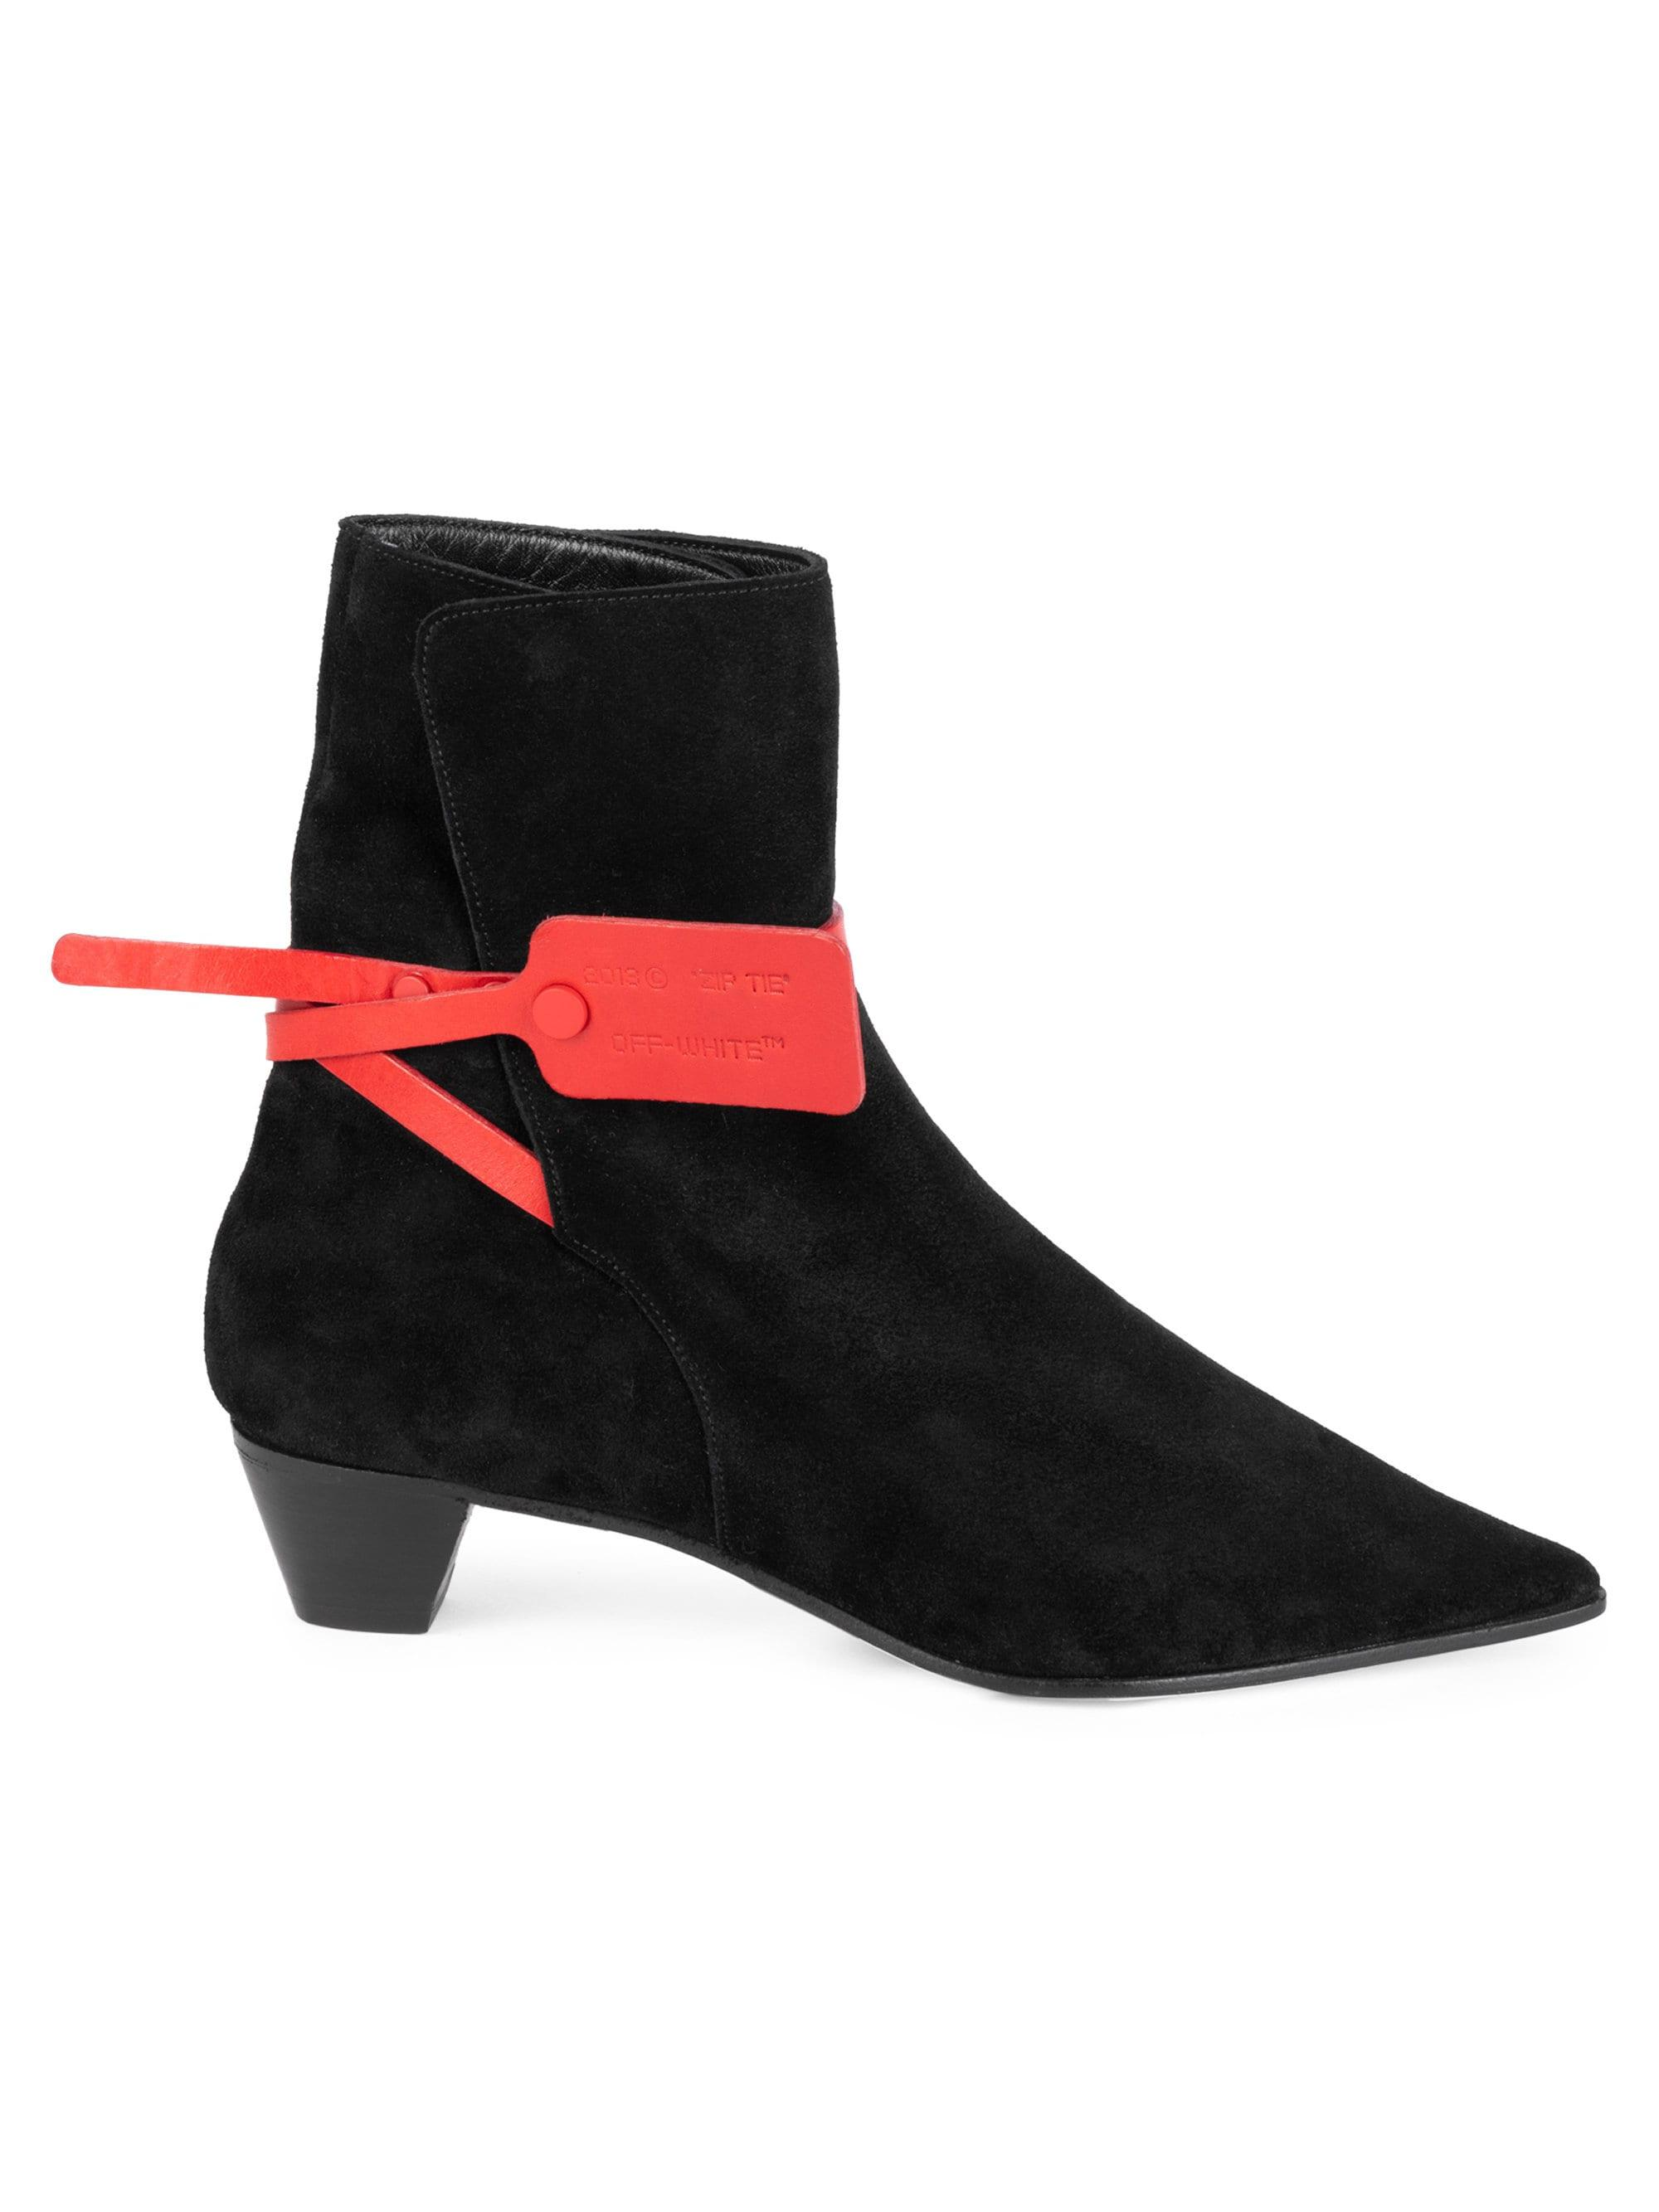 9cb4e753e03a Off-White c o Virgil Abloh Zip-tie Jodhpur Suede Pointed Booties in ...